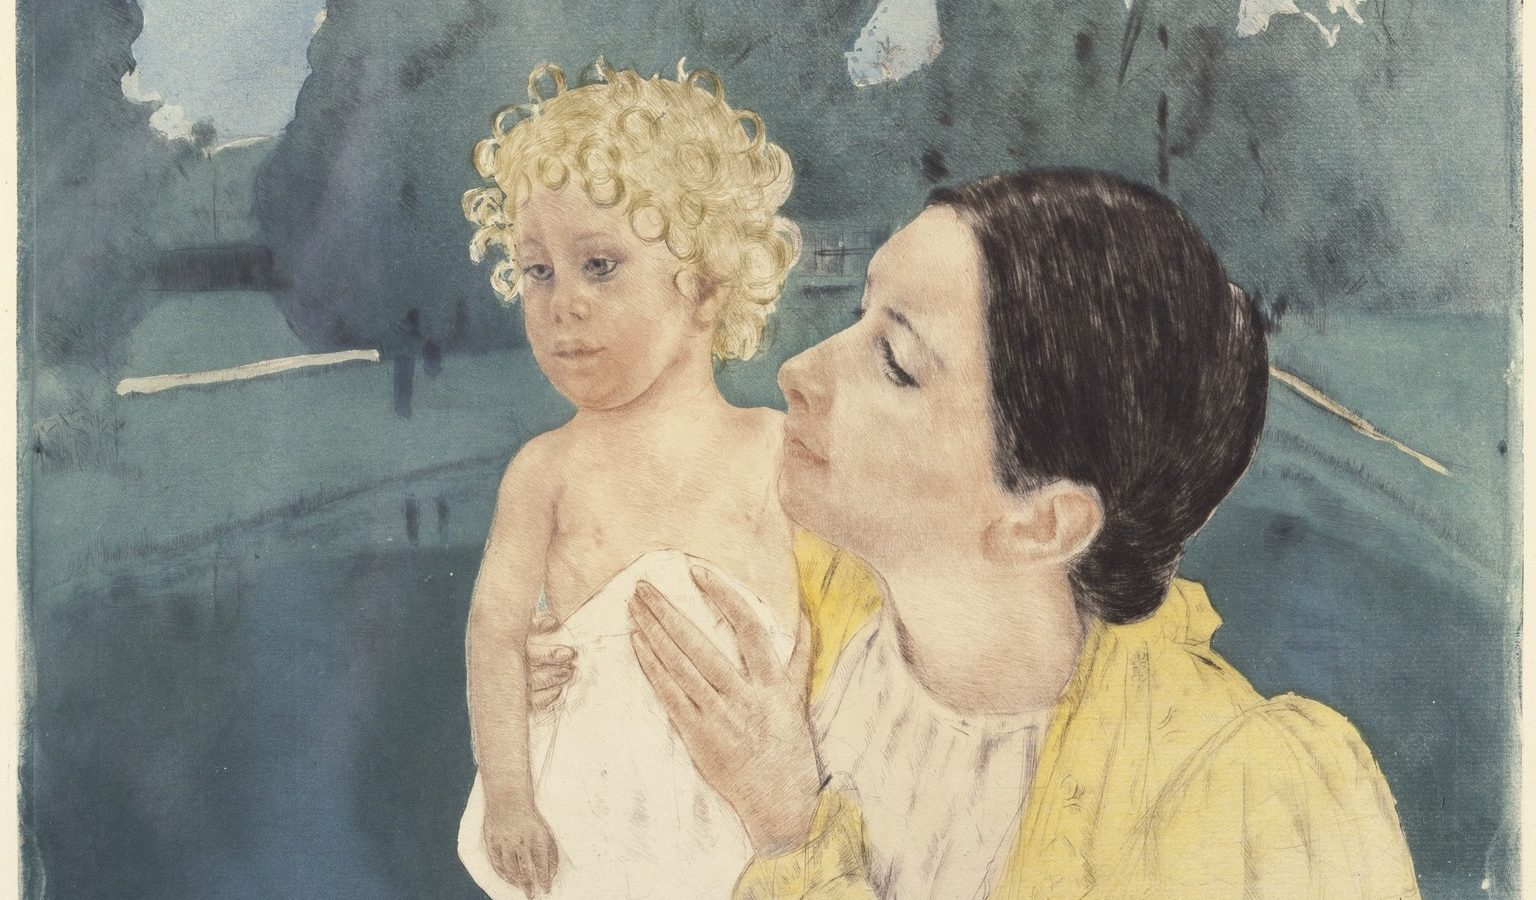 Painting of a mother holding her child in front of a pool. The child looks away while the mother gazes lovingly at him.